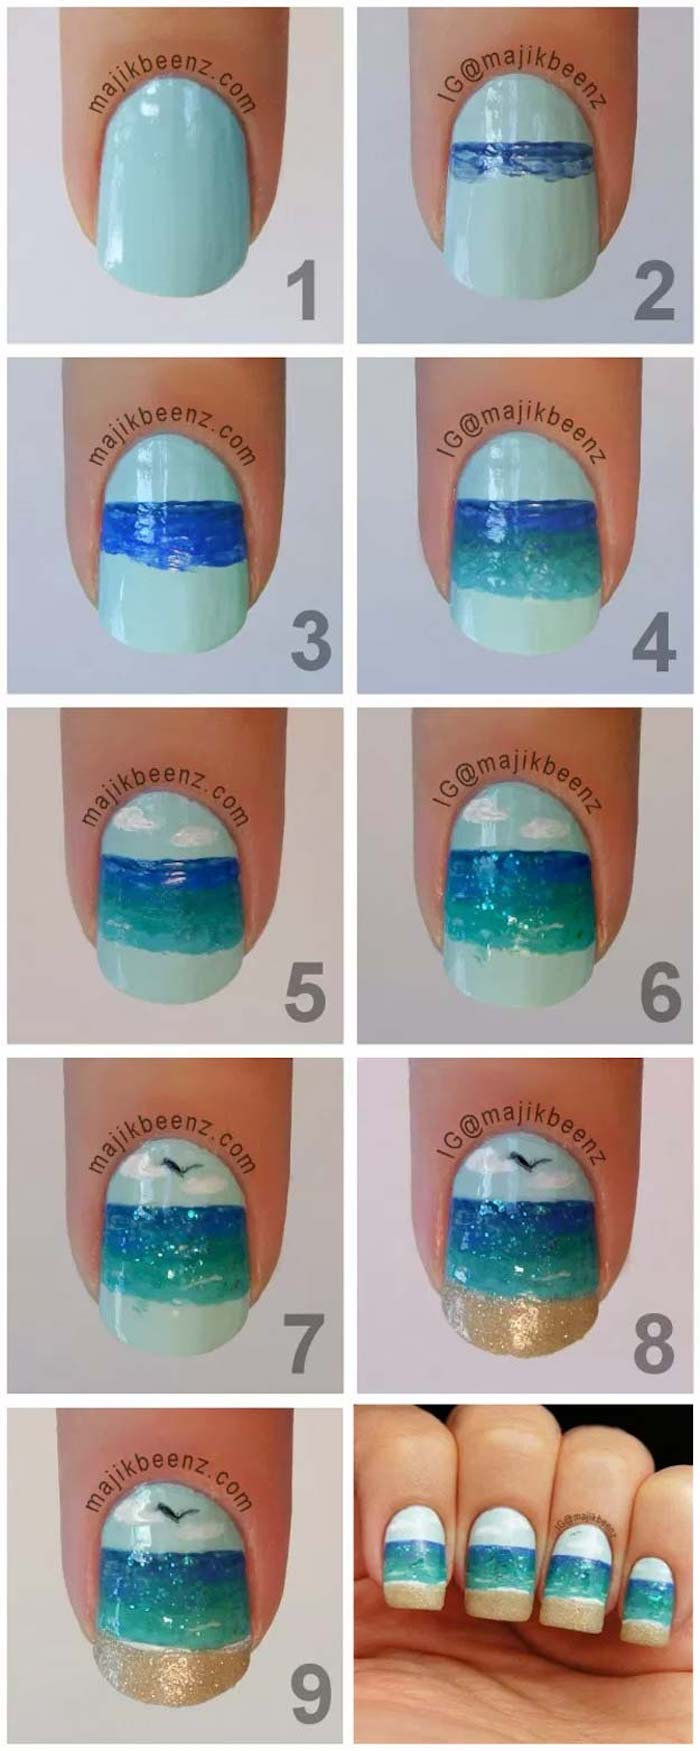 blue and gold ocean landscape decoration cute acrylic nail ideas step by step diy tutorial photo collage